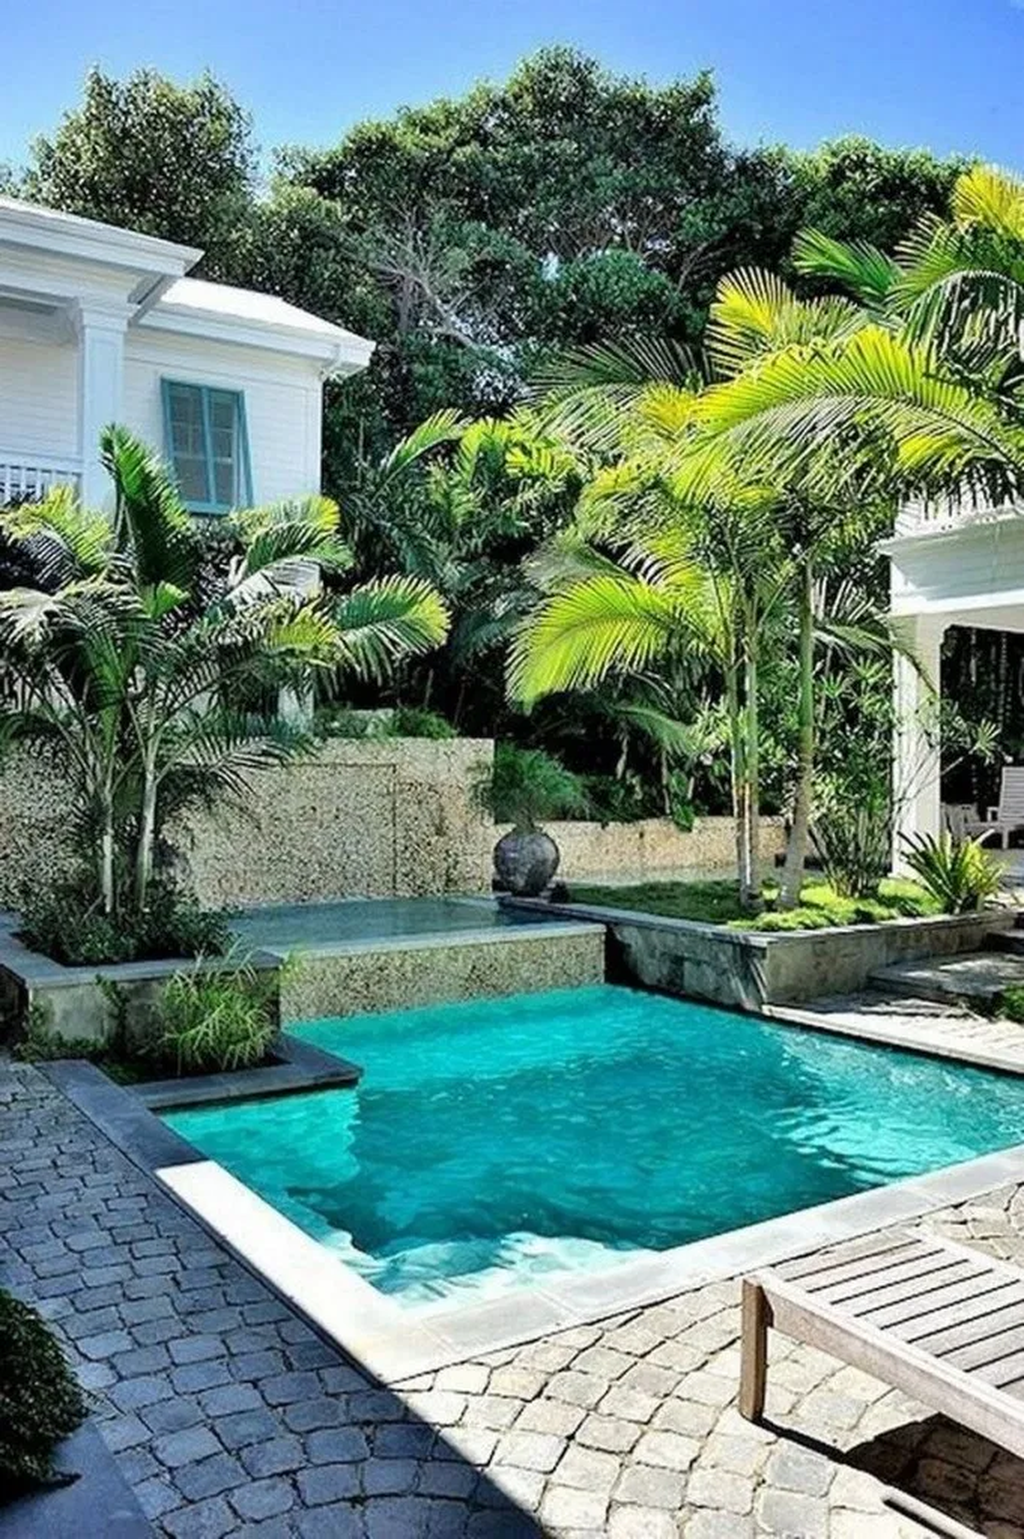 Beautiful Small Pool Backyard Landscaping Ideas Best For Spring And Summertime 11